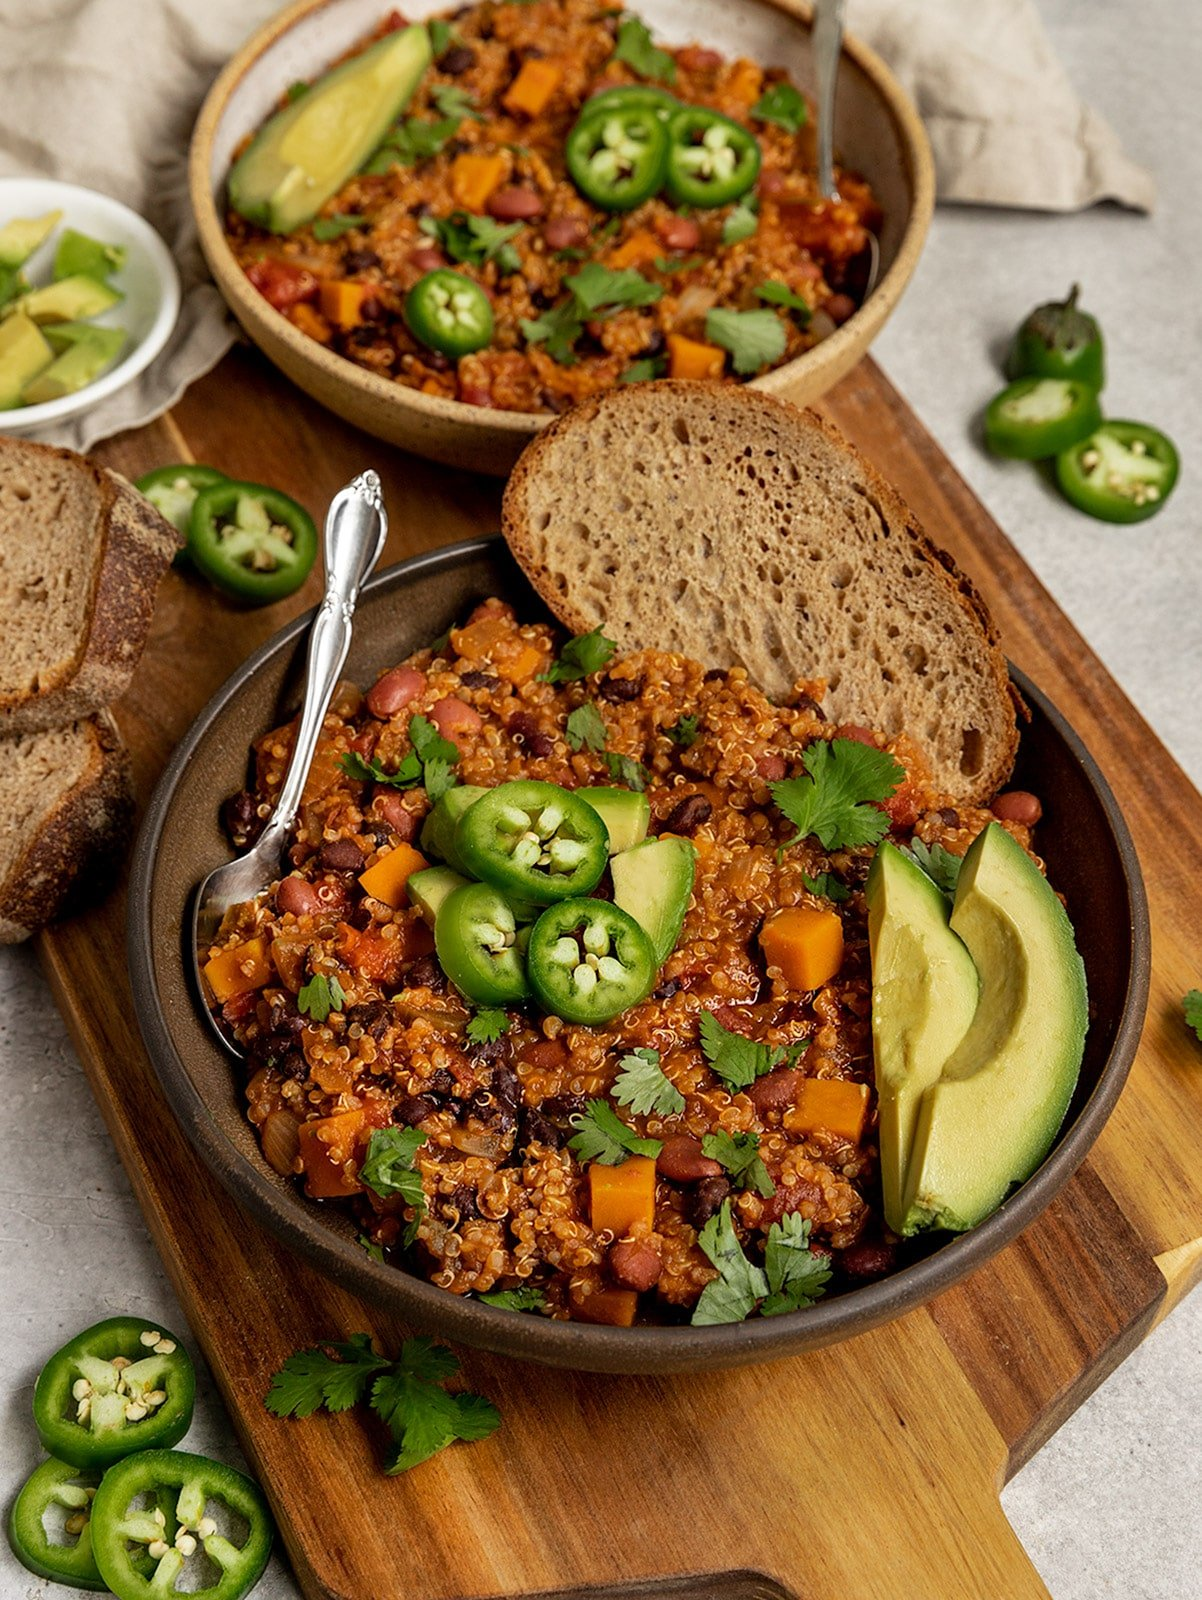 two bowls of quinoa butternut squash and bean chili with jalapeño slices, avocado slices, cilantro, and a slice of bread on top